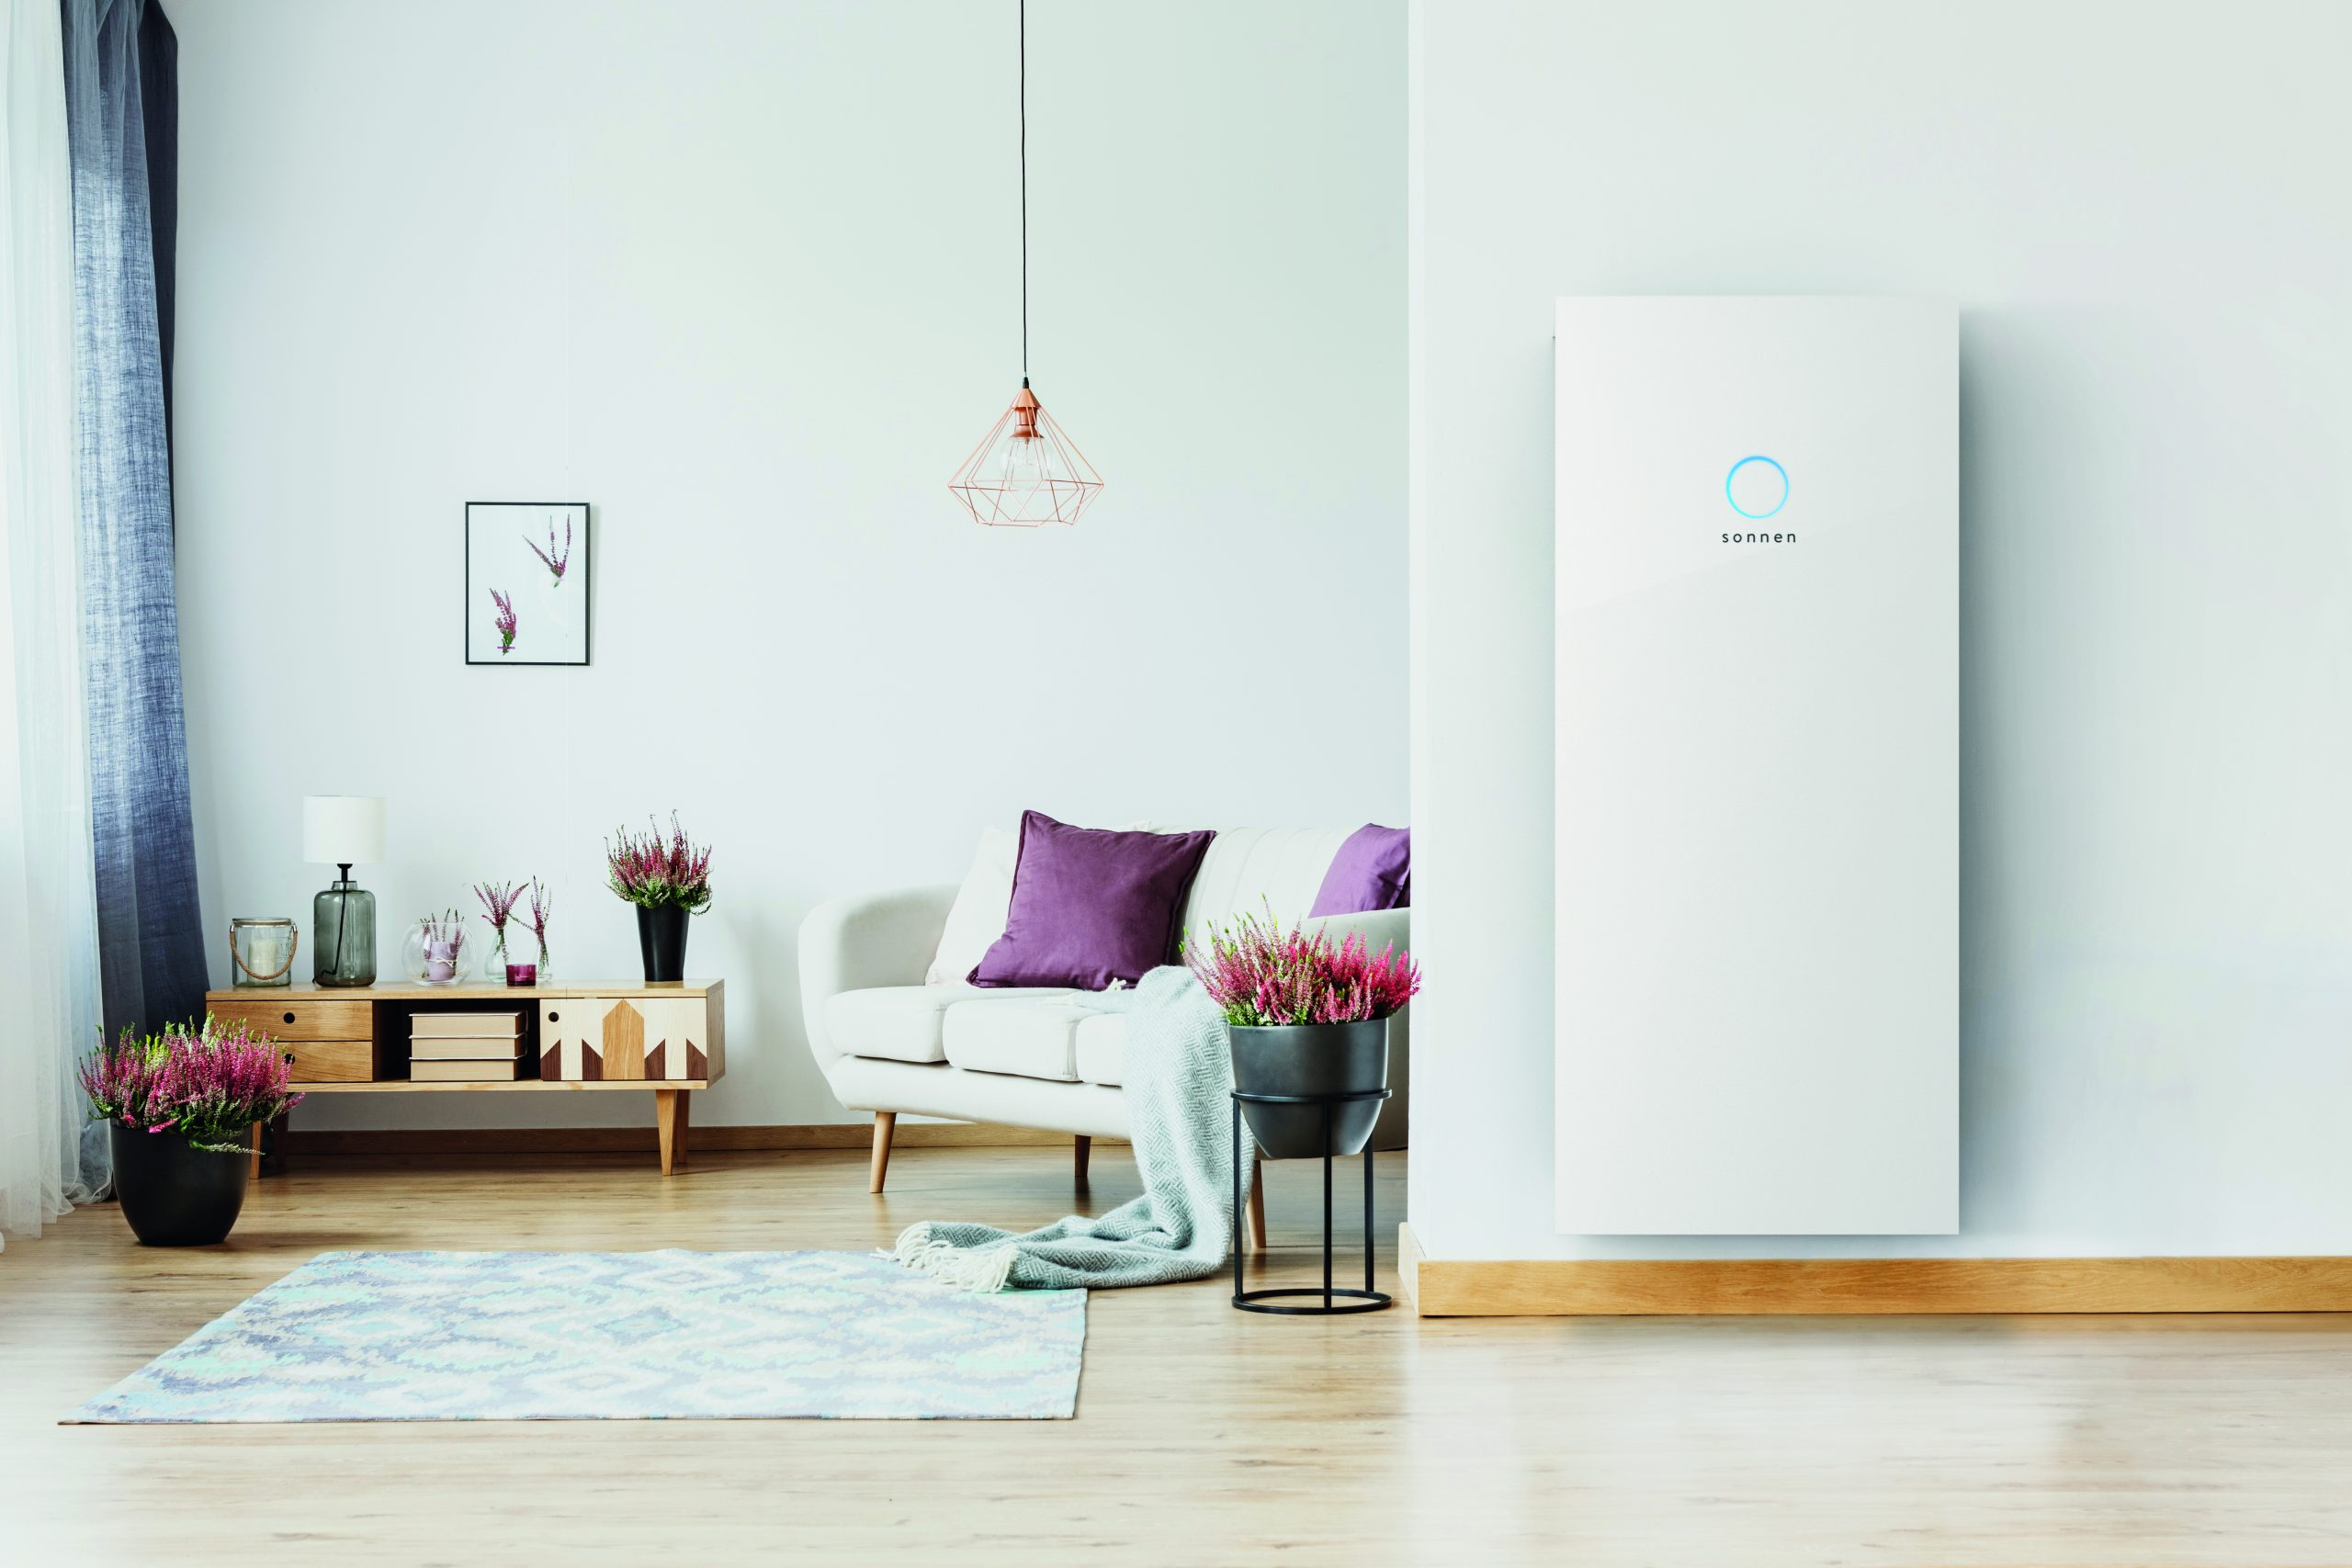 Sonnen pilot: how home storage helps to balance grid